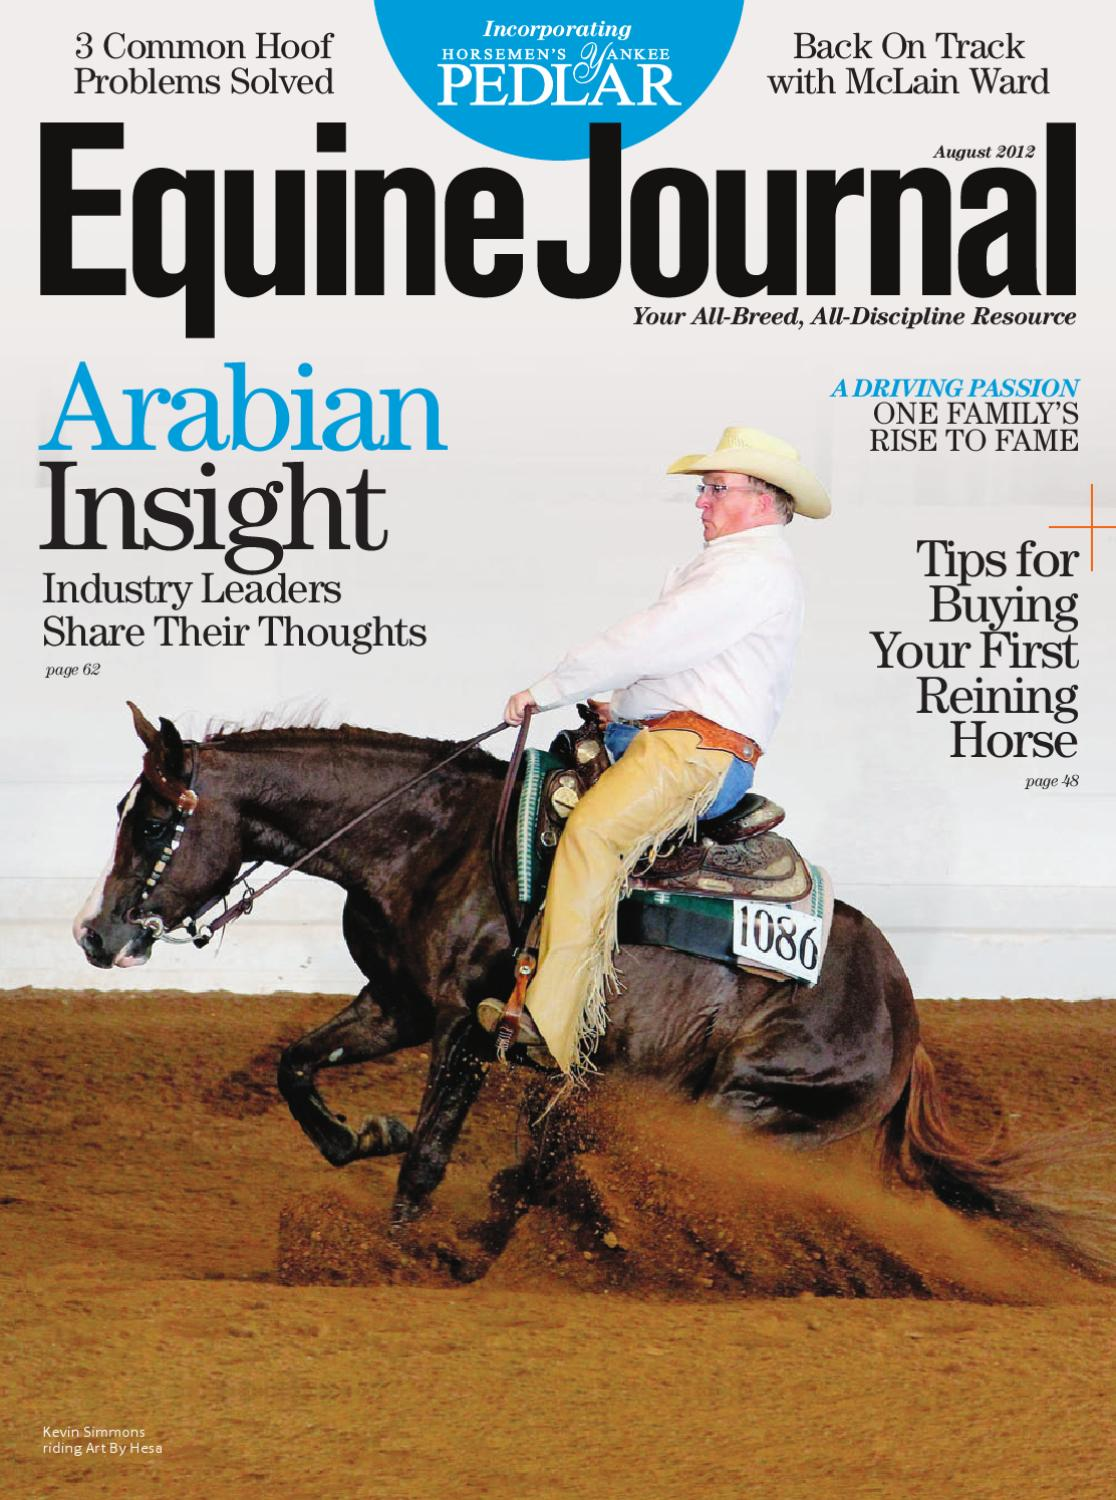 Equine Journal (August 2012) by Equine Journal - issuu